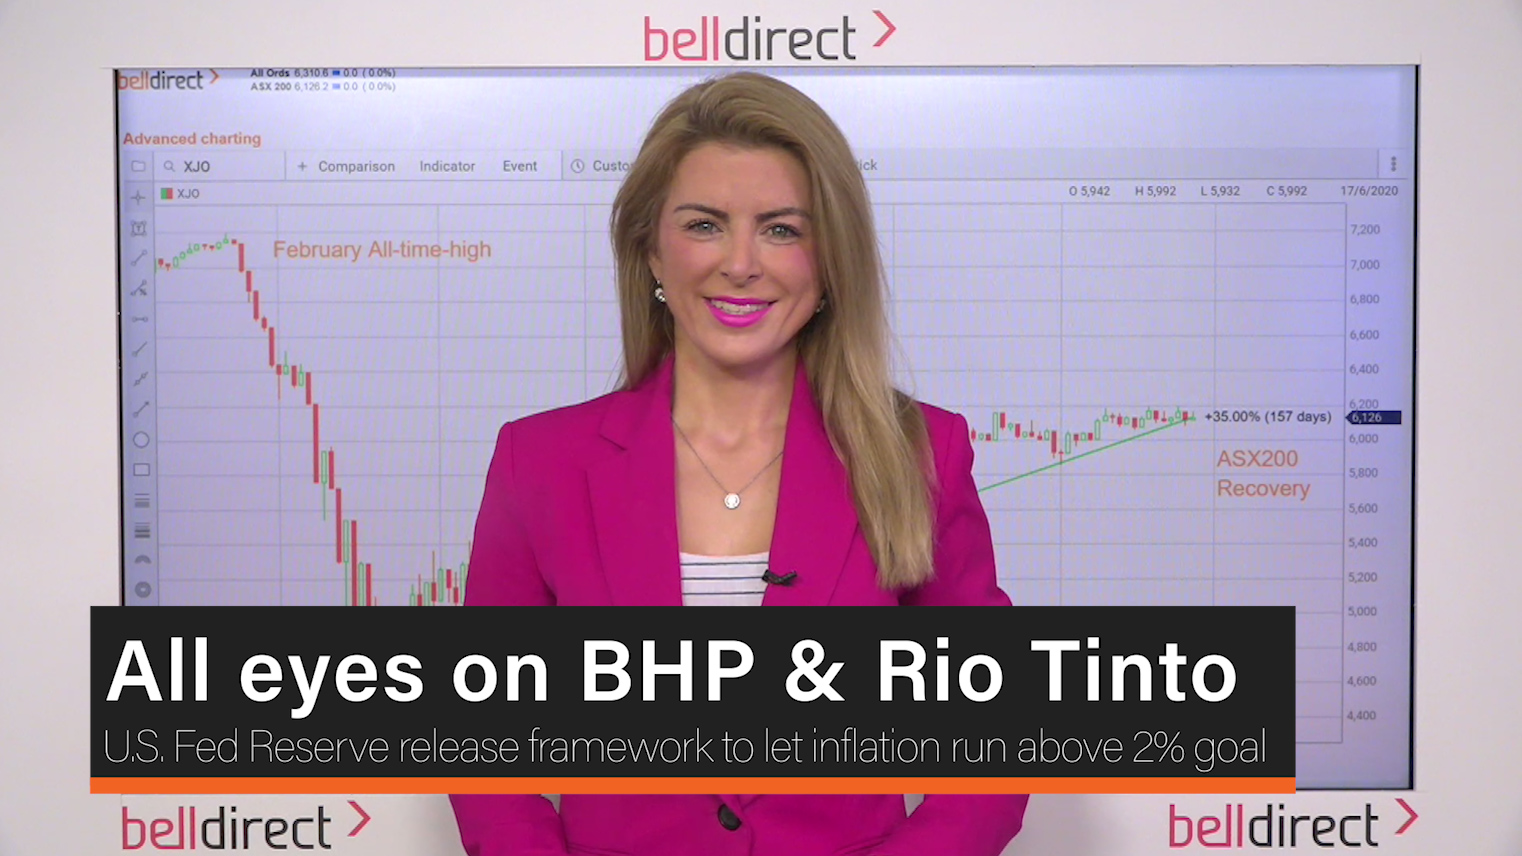 All eyes on BHP & Rio Tinto